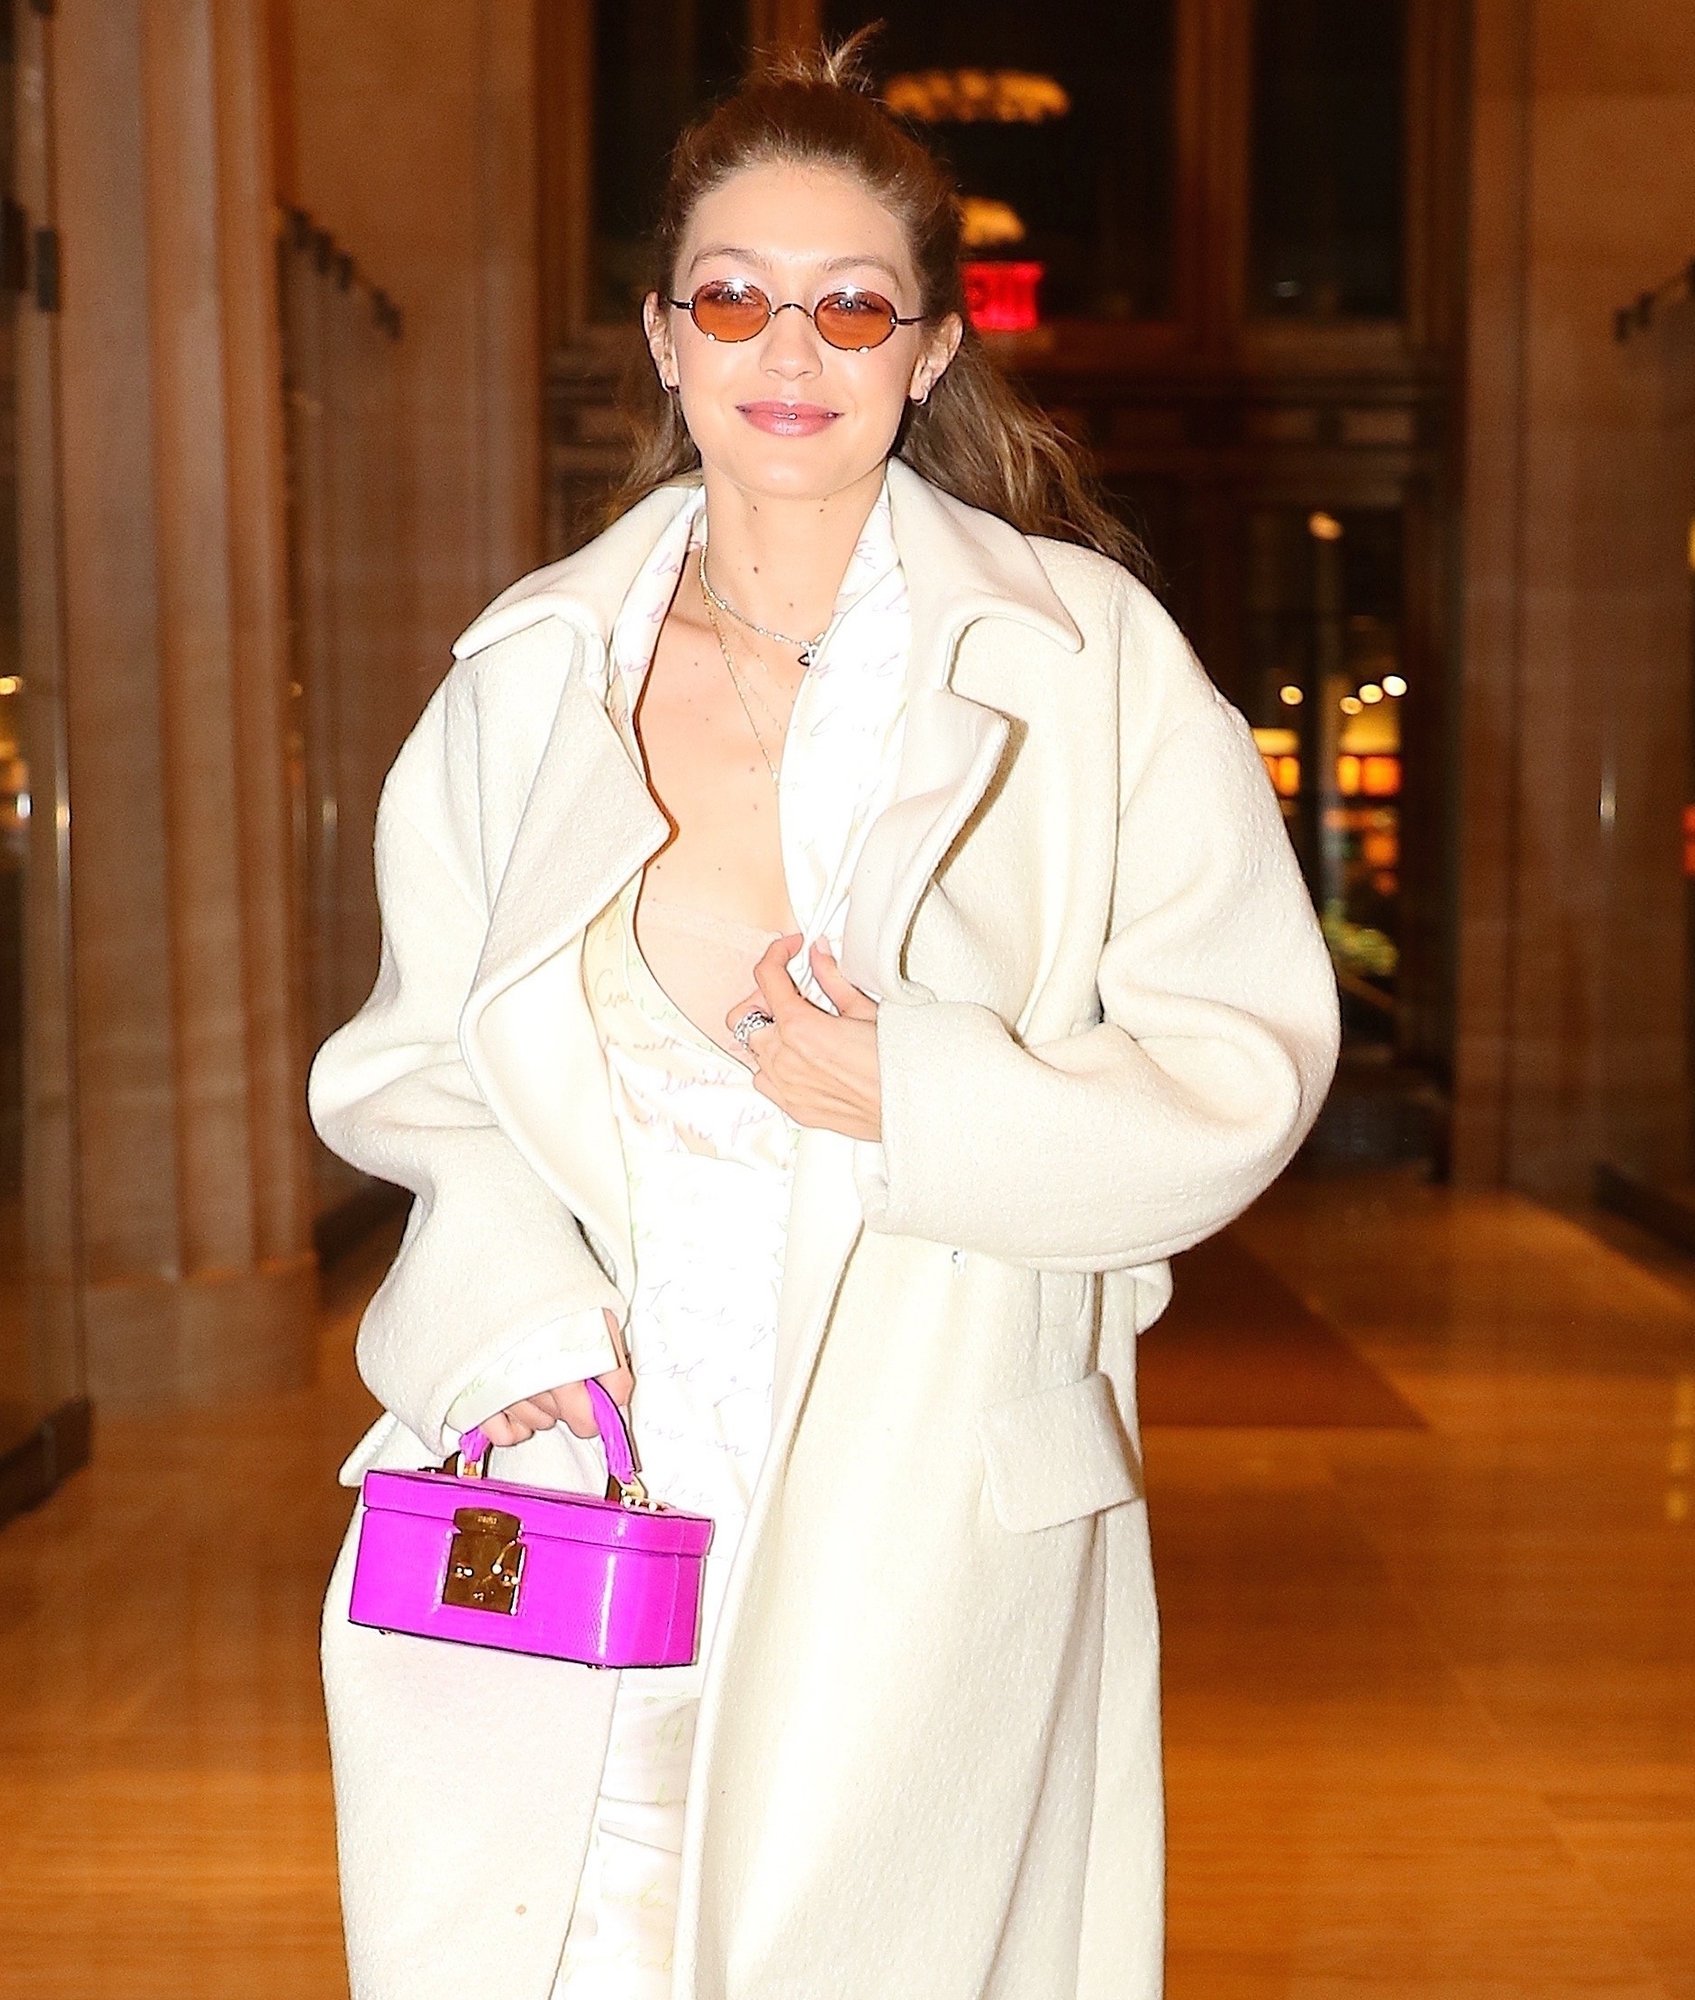 *EXCLUSIVE* Gigi Hadid adds a pop of color to her all white ensemble during a dinner outing in NYC